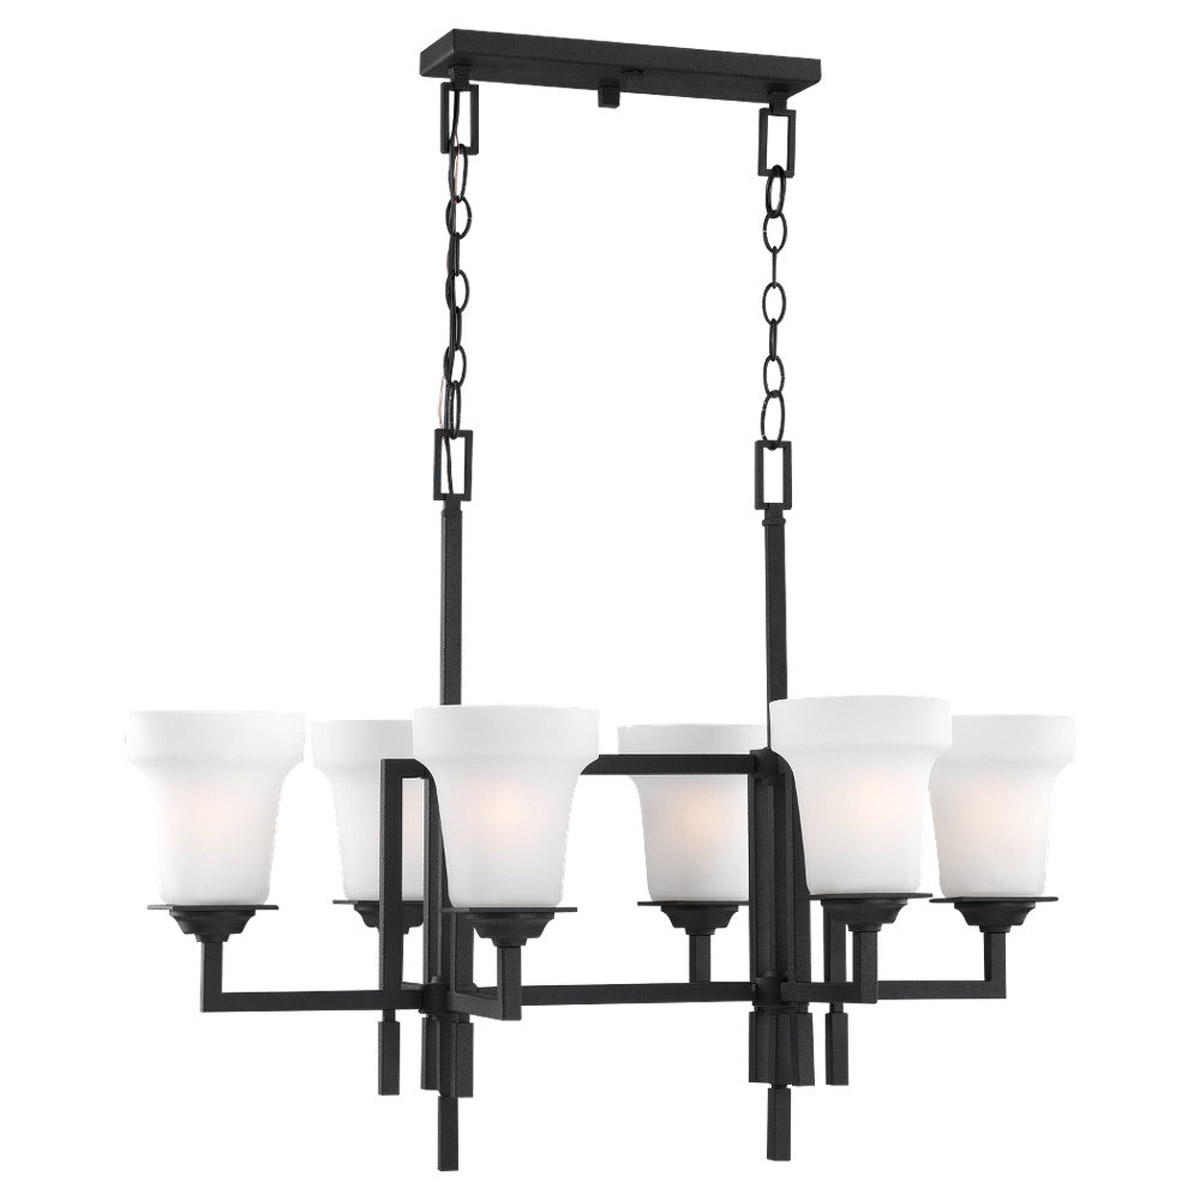 Sea Gull Lighting Cardwell 6 Light Chandelier in Blacksmith 31632-839